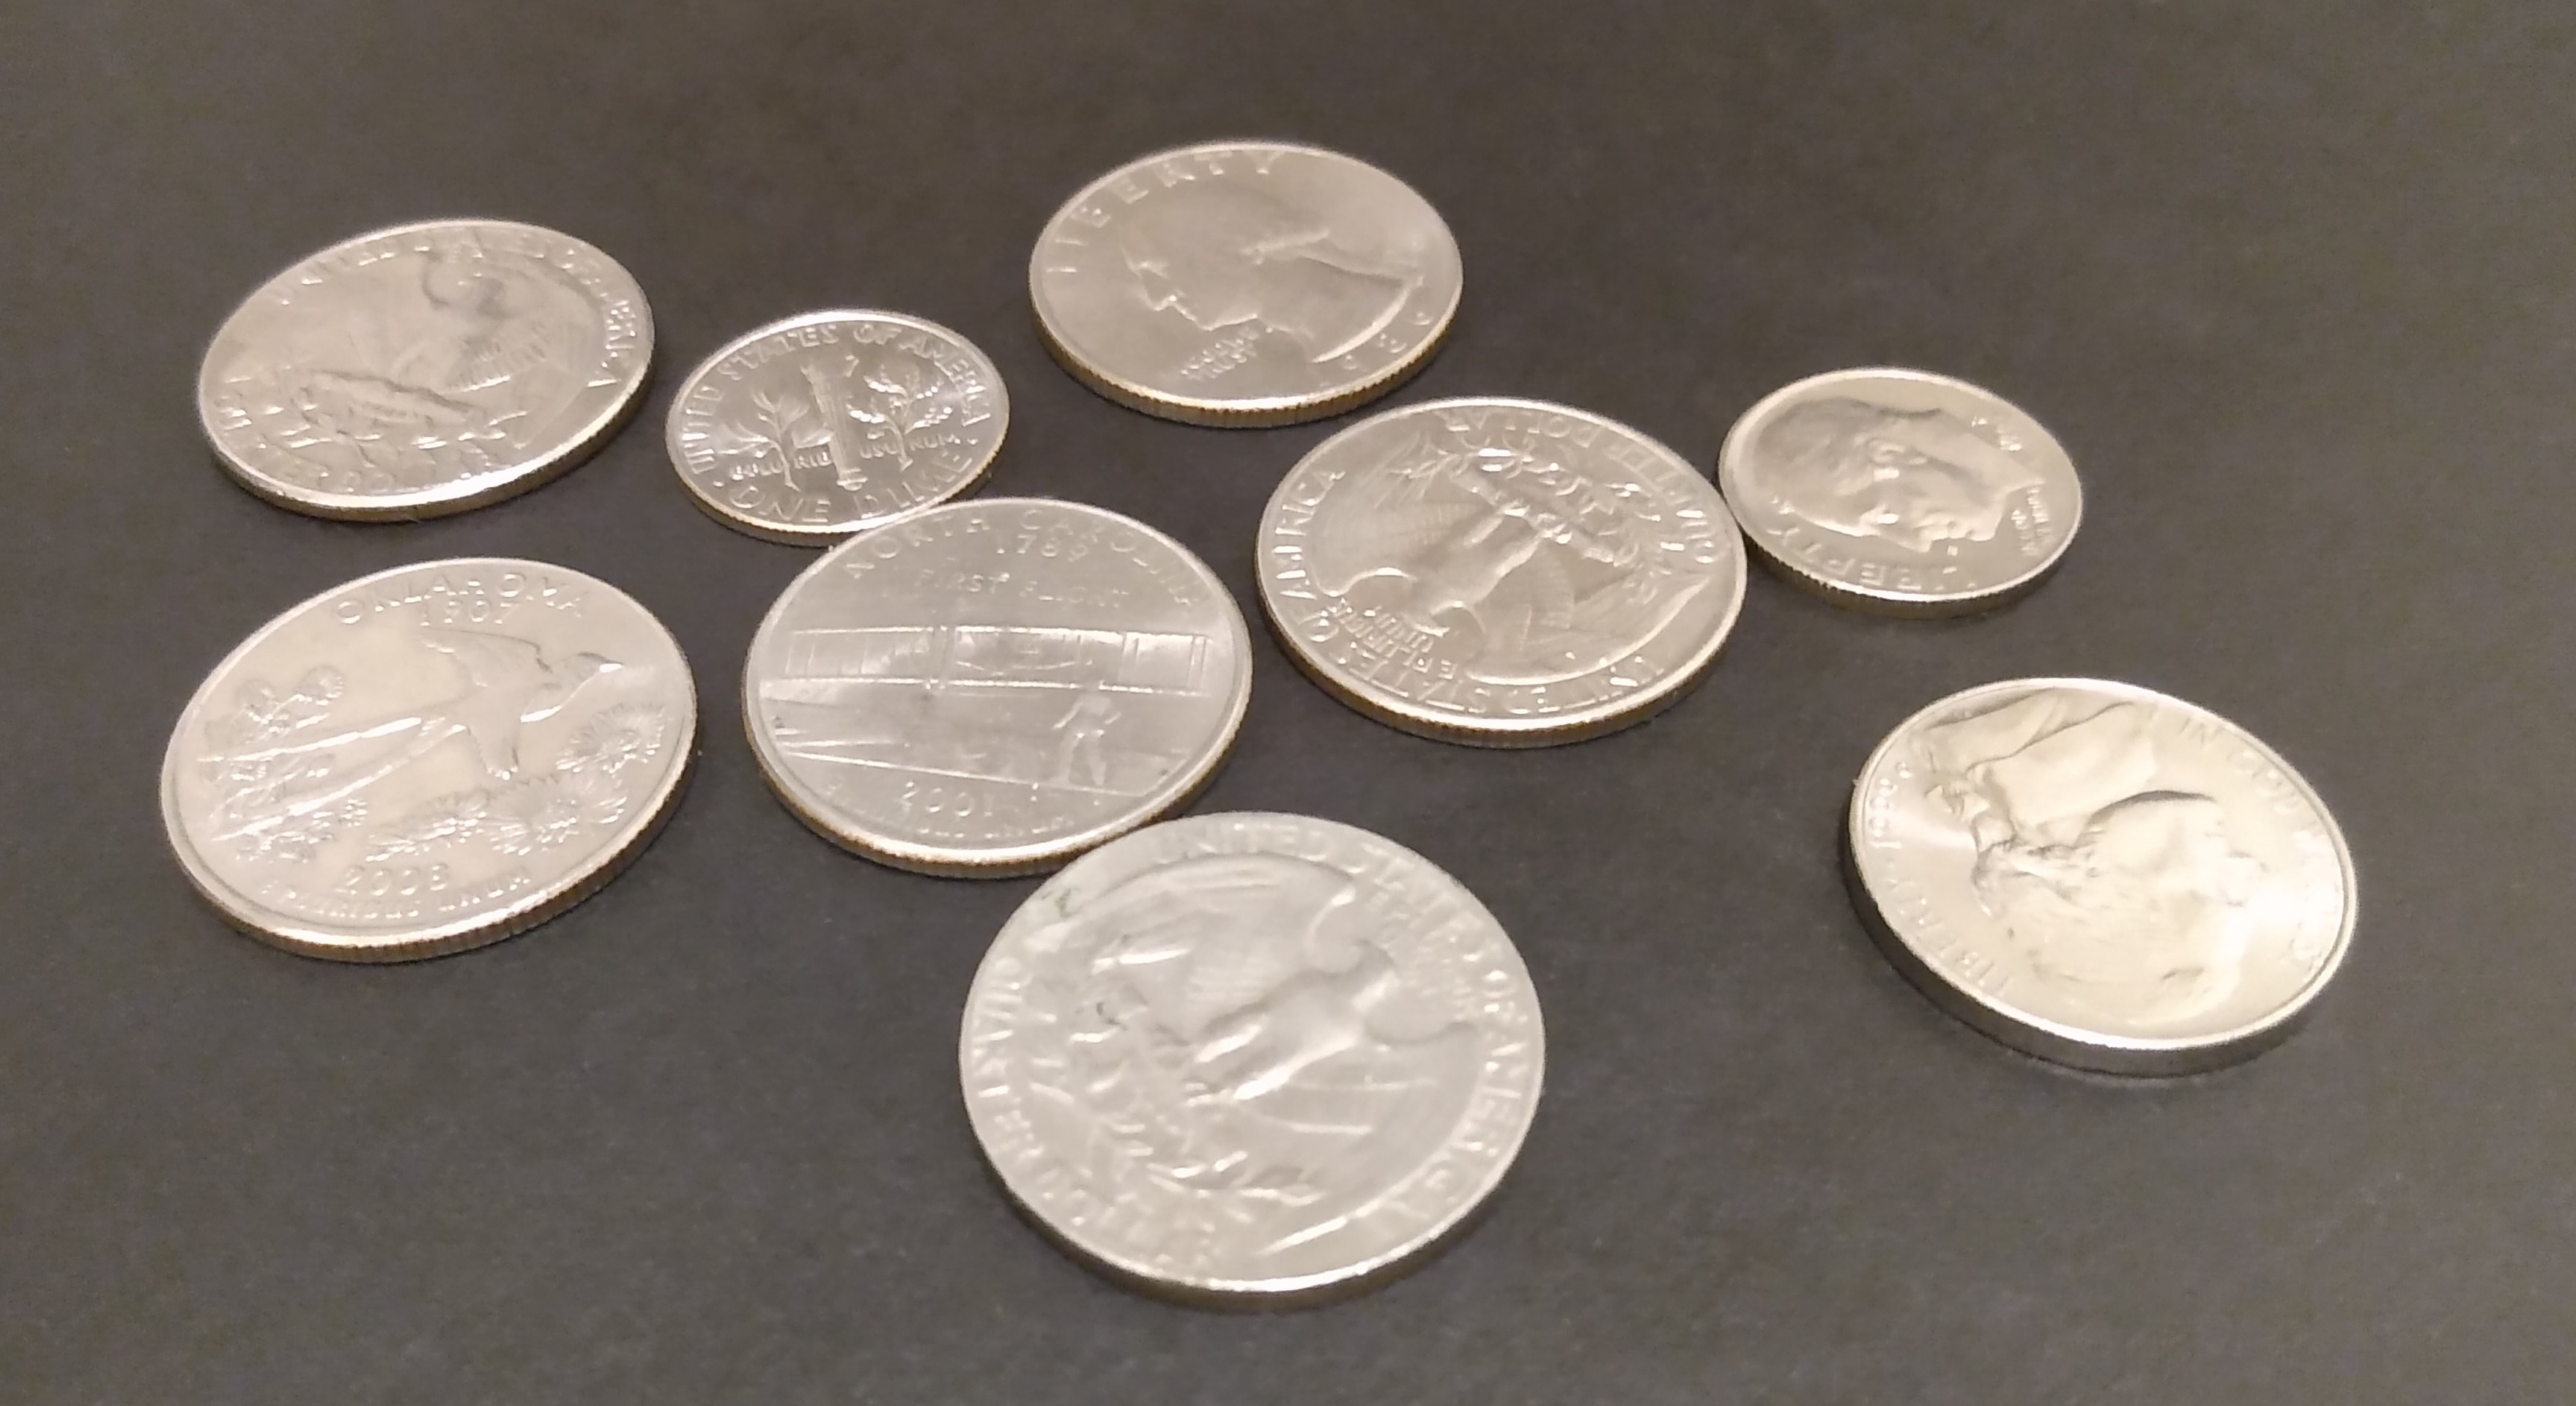 Six quarters, two dimes, and a nickel, on a black background.